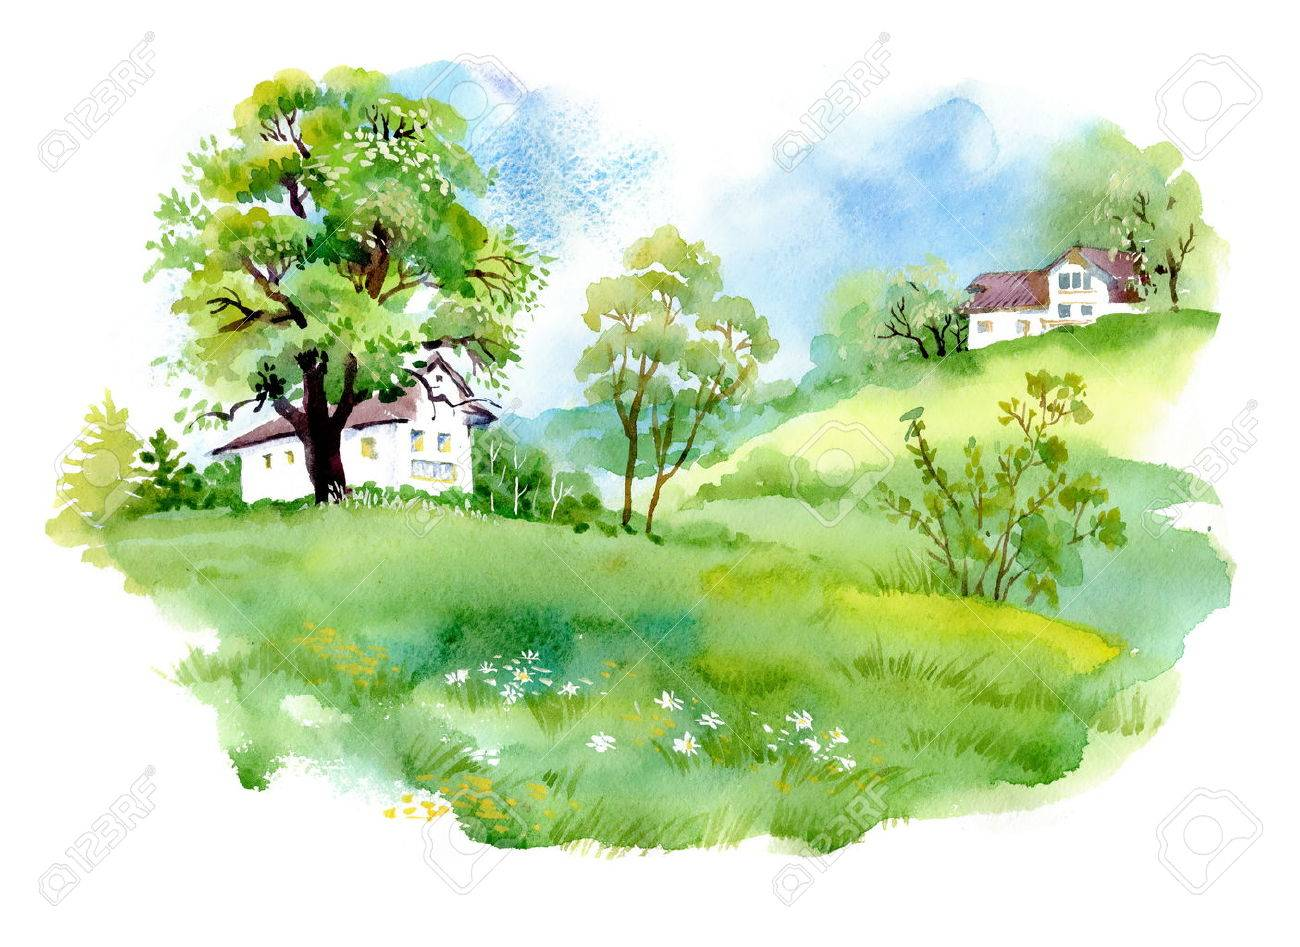 landscape with houses watercolor illustration royalty free cliparts